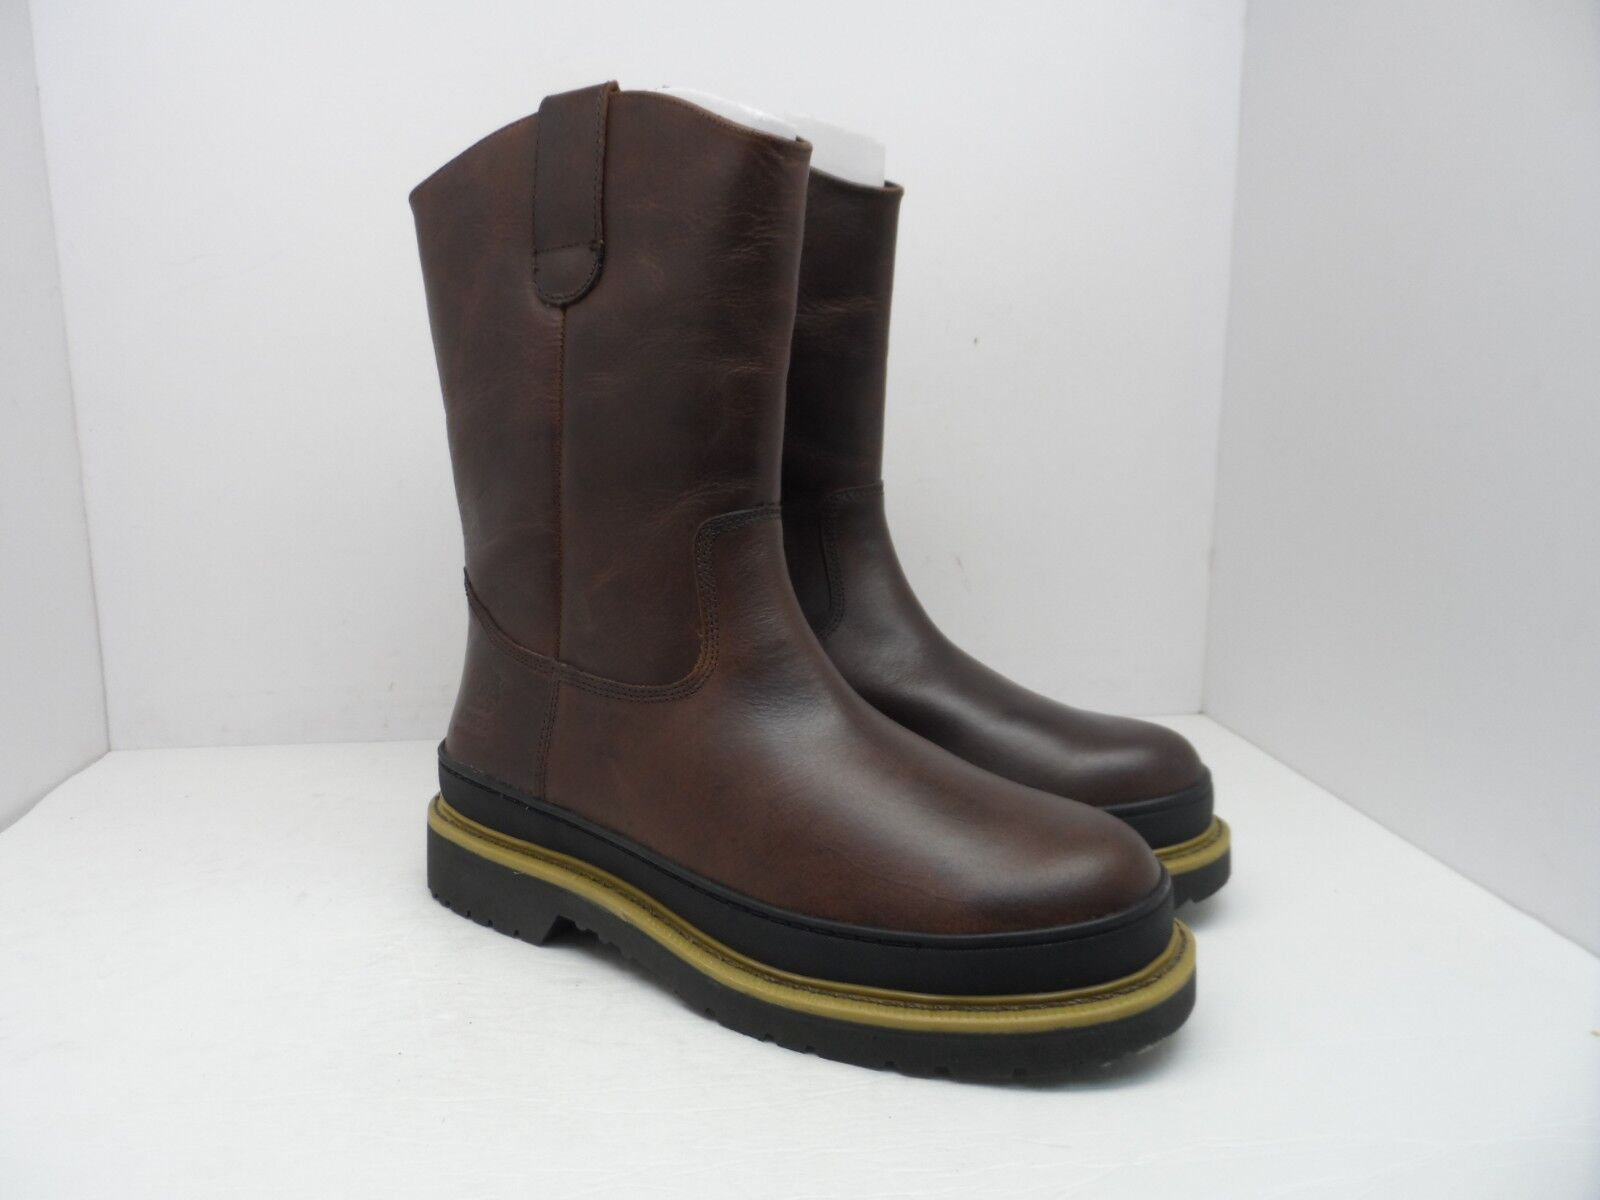 KWLK01 KINGS 6 Leather Steel Toe Womens Work Boots with Goodyear Welt